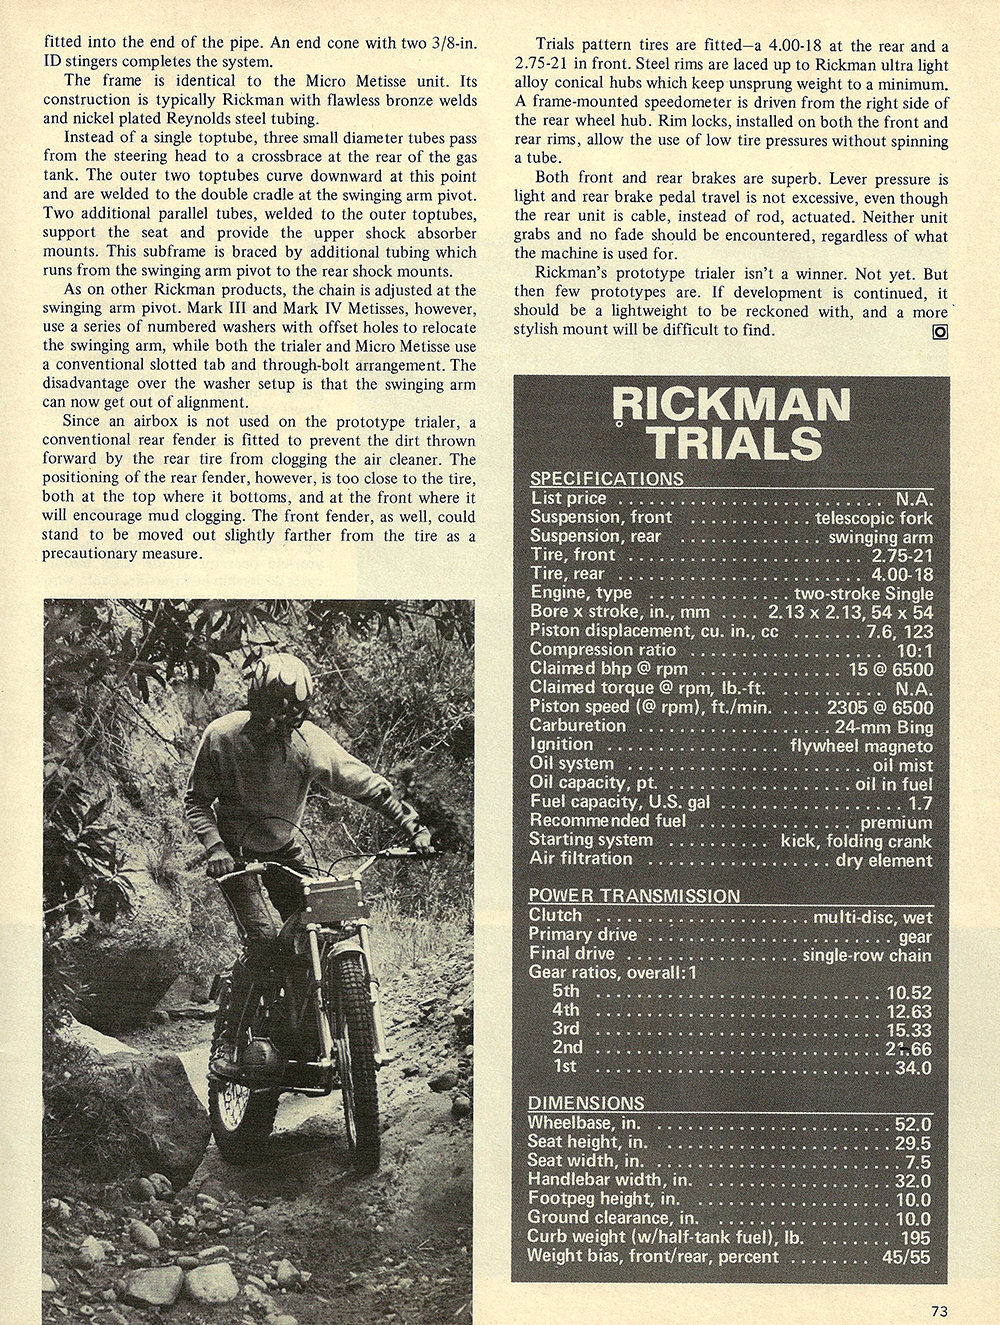 1971 Rickman Trials Prototype road test 02.jpg